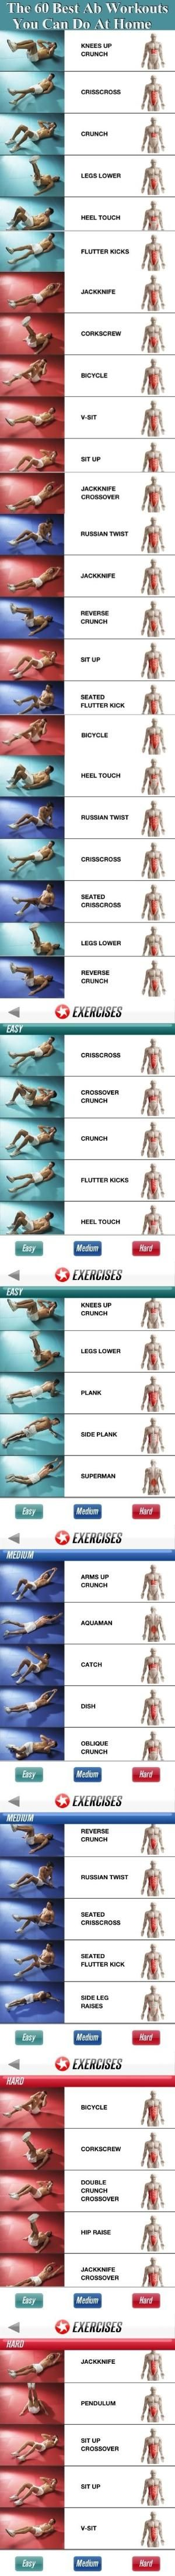 ab workout by esmeralda